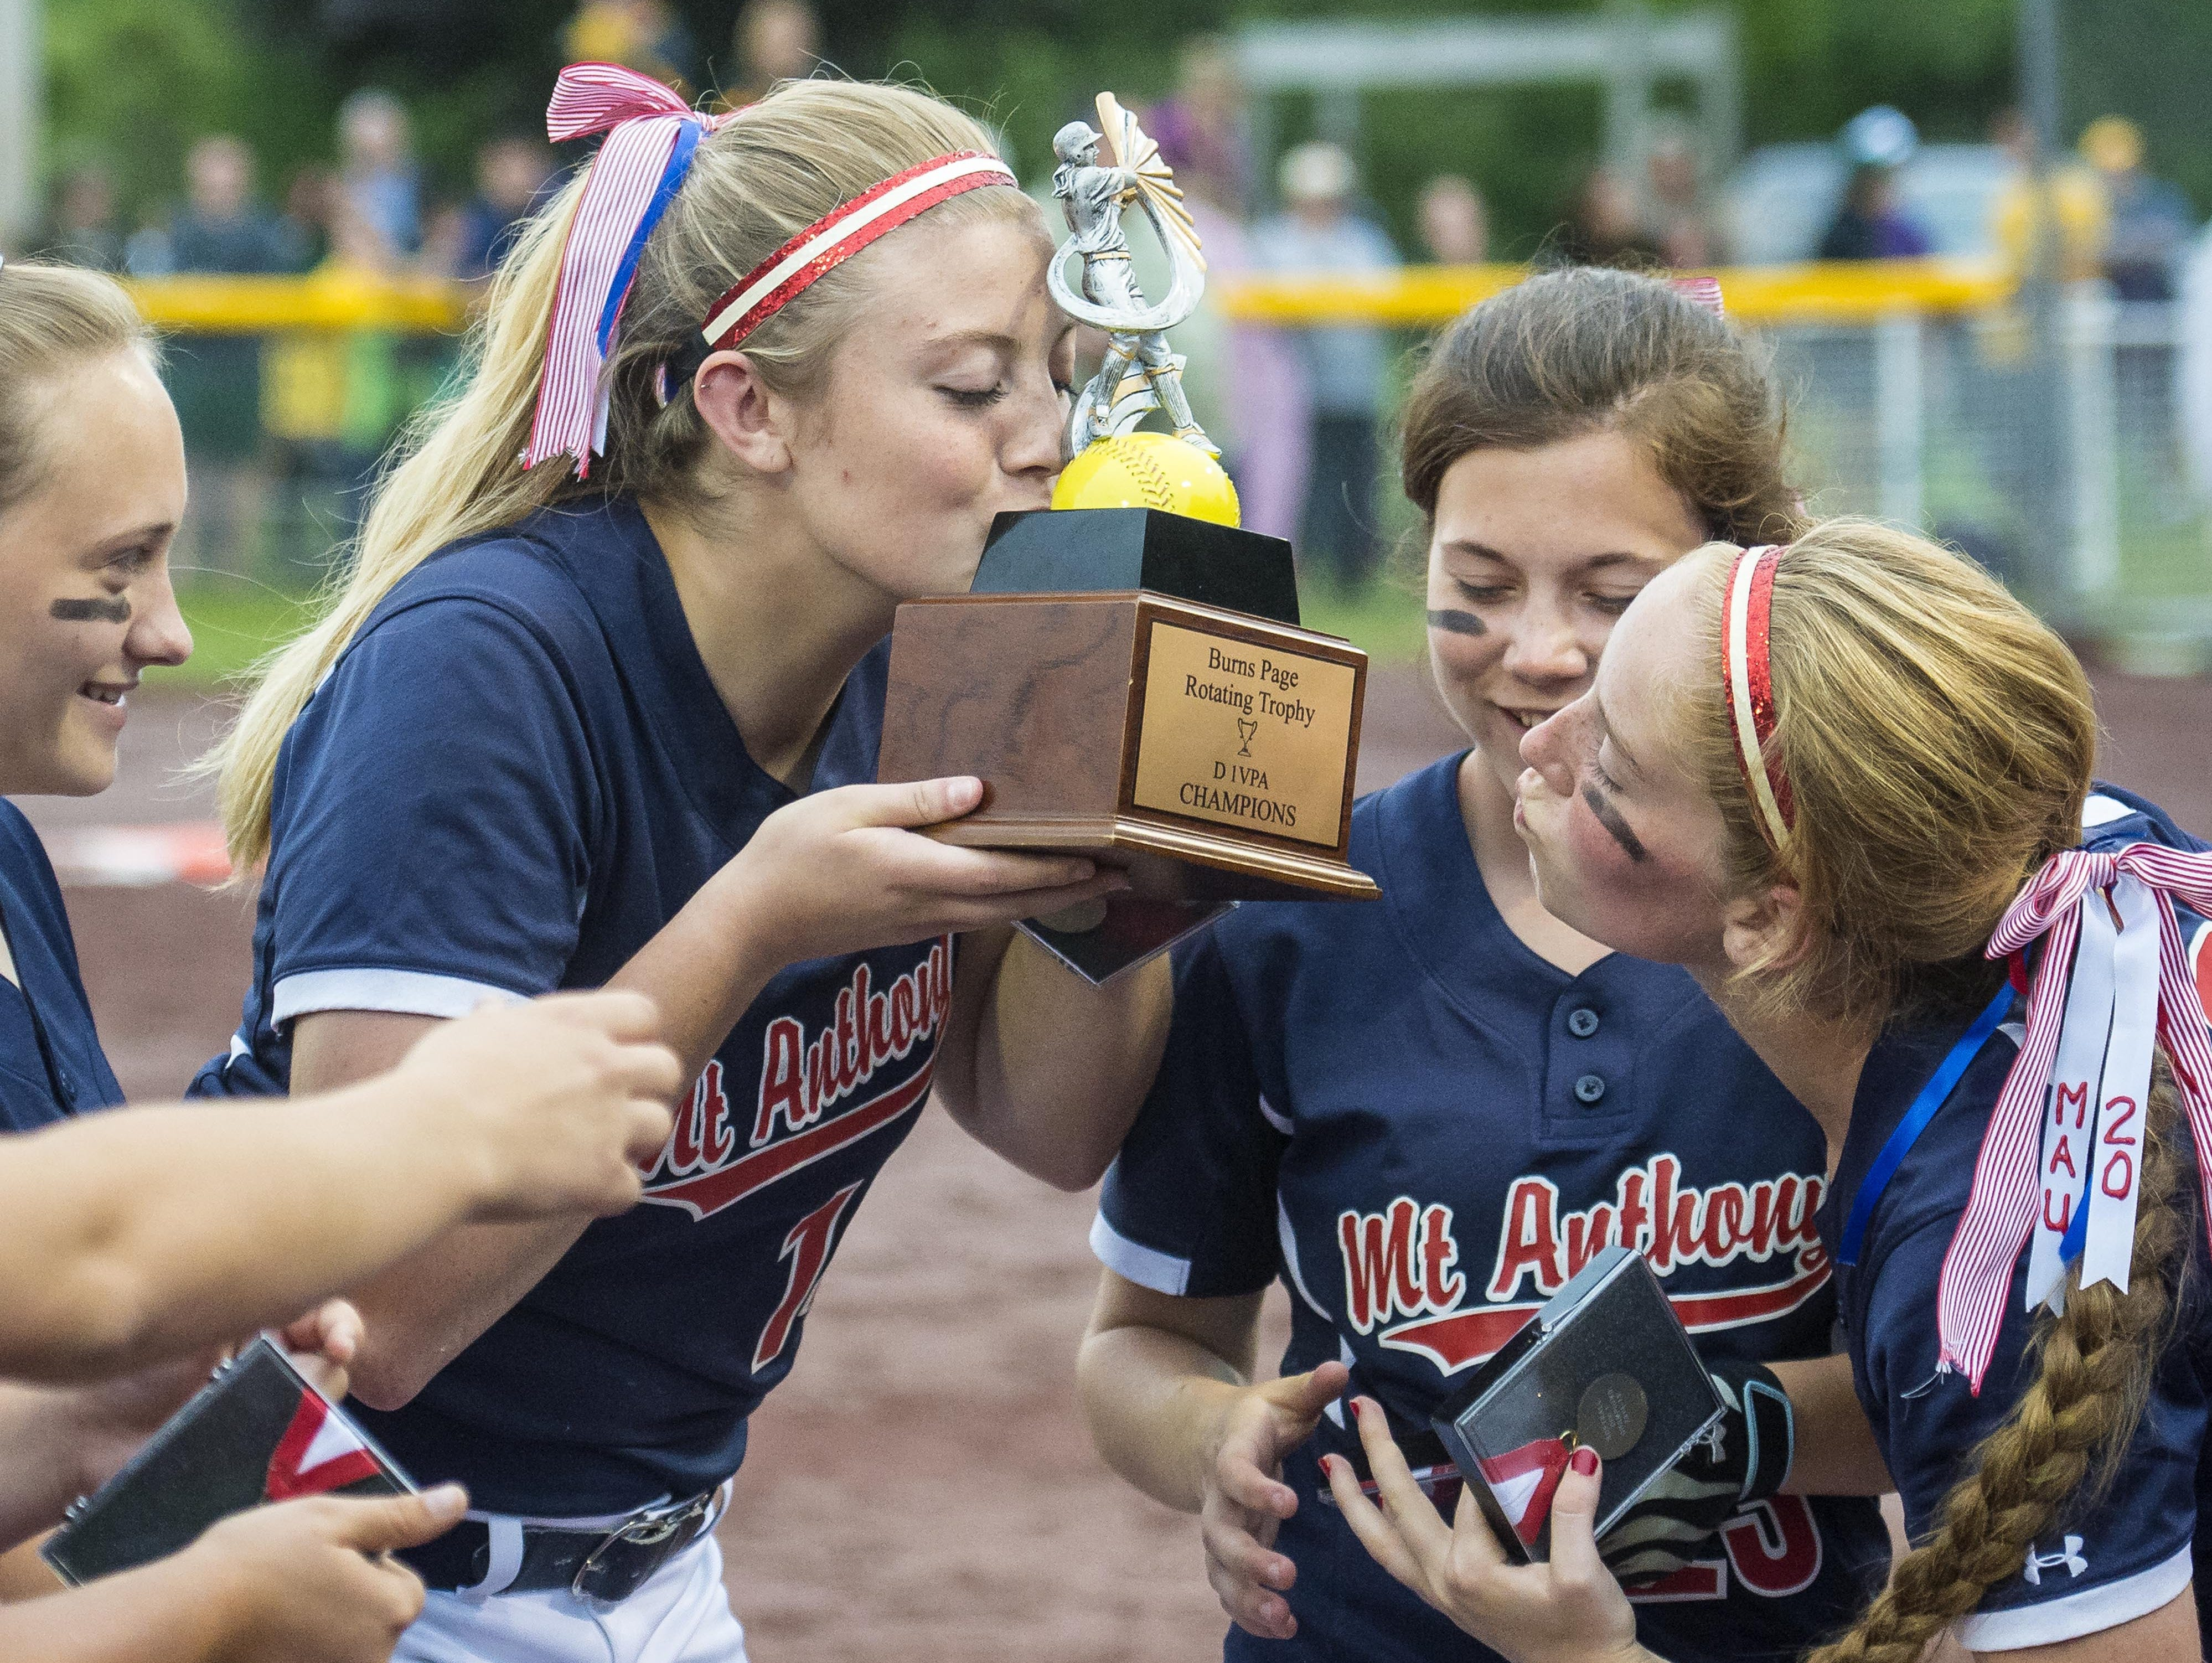 Mt. Anthony's Marleigh Greene, left, and Keira Goodell kiss the trophy after defeating BFA in the Division I state high school softball championship in Poultney on Monday, June 15, 2015.